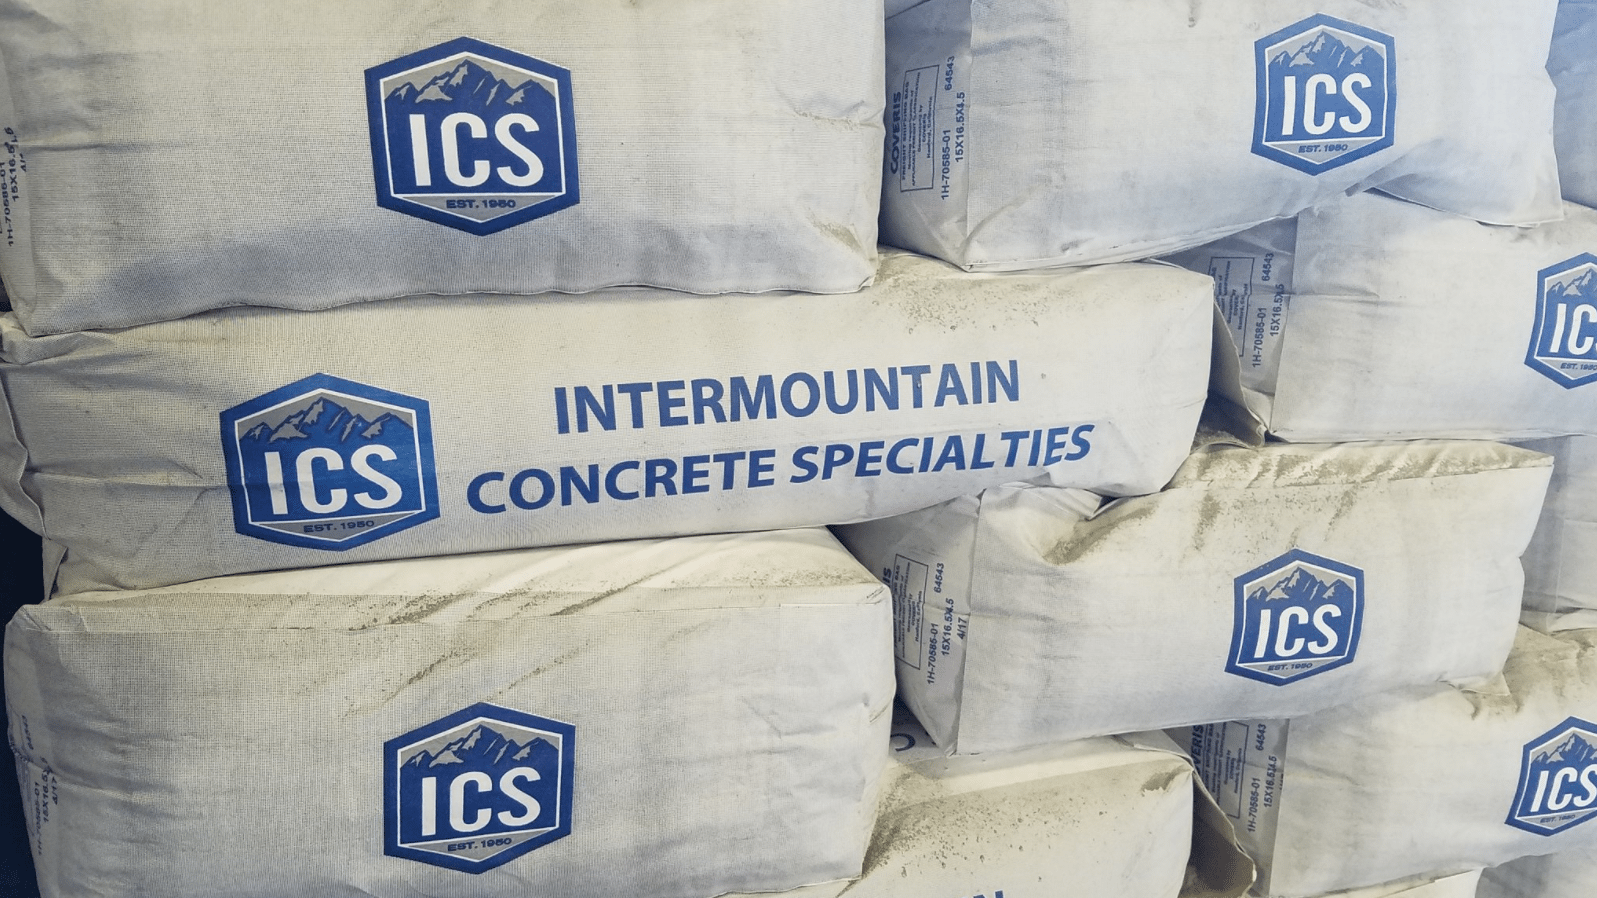 ICS precision concrete grout